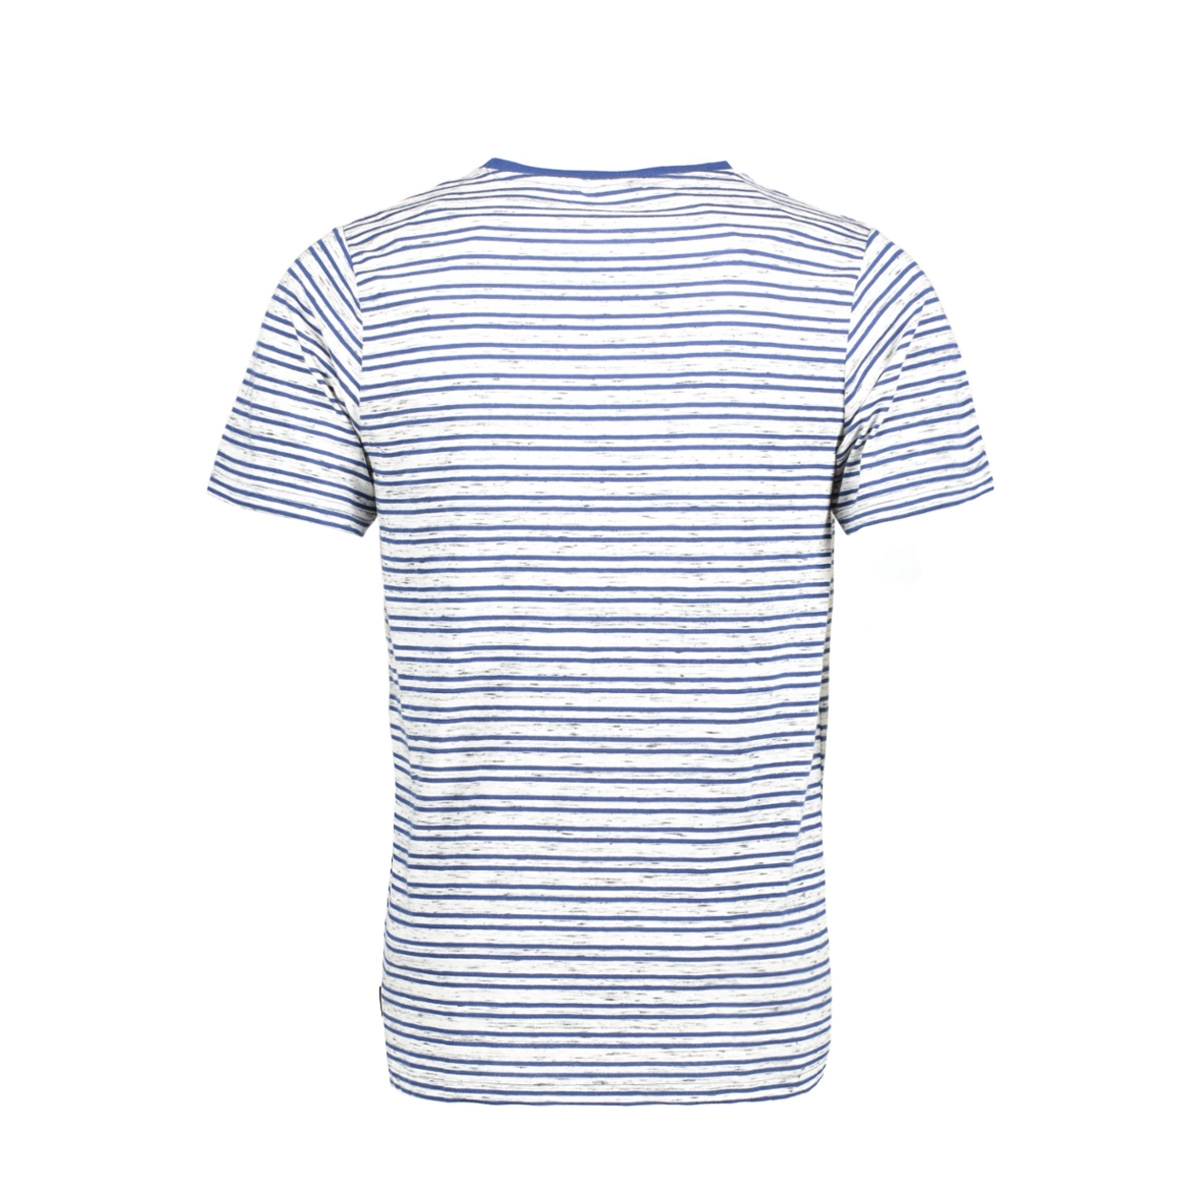 jorcinnema tee ss crew neck 12124523 jack & jones t-shirt true blue